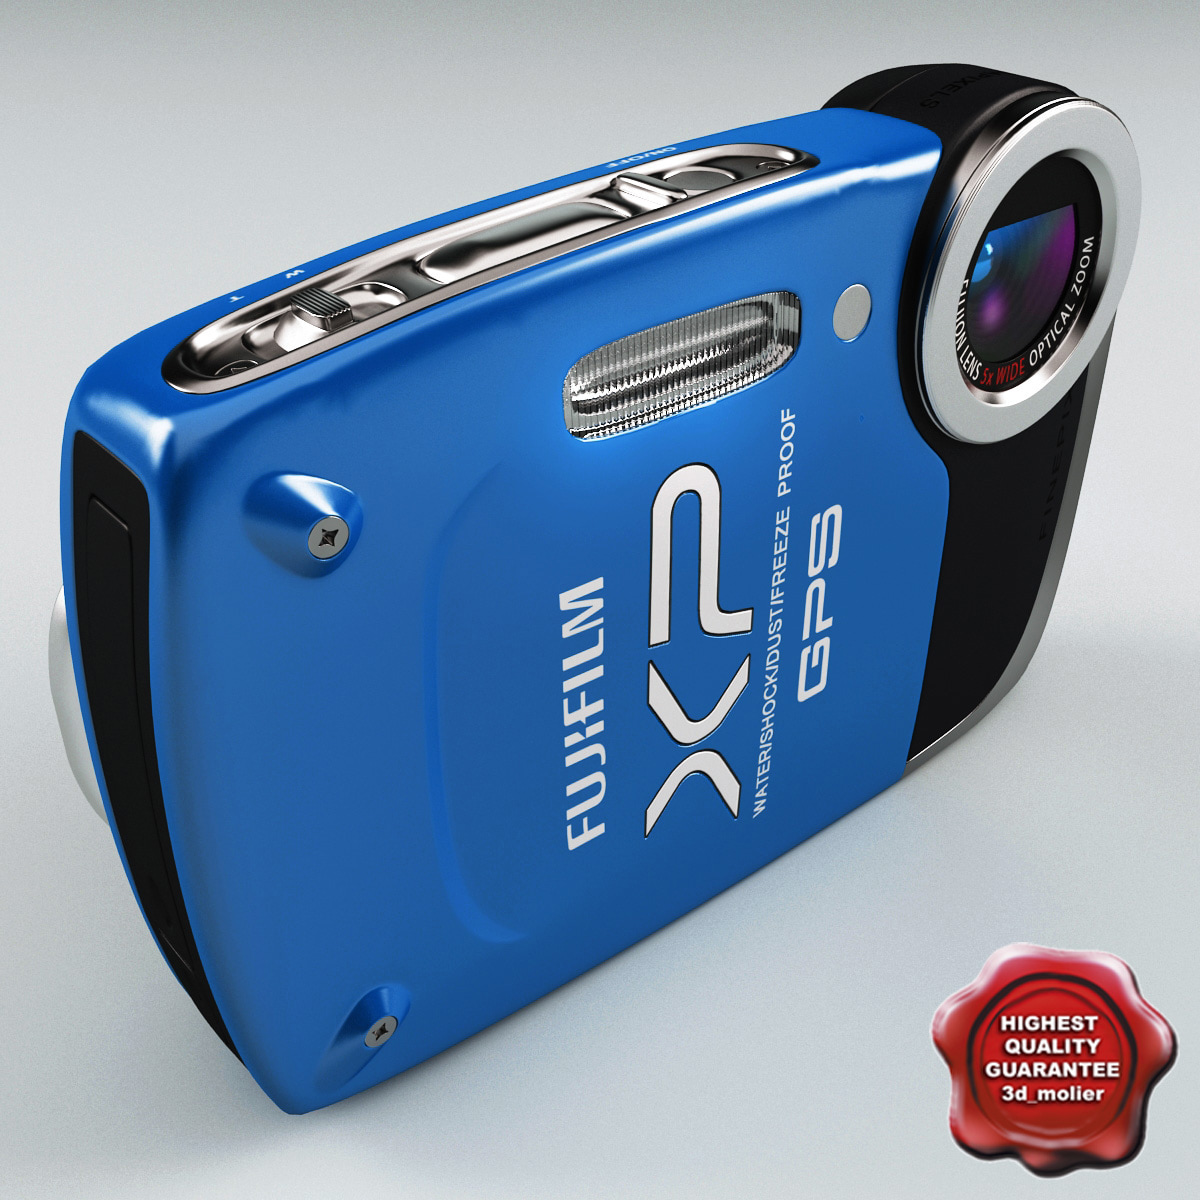 Fujifilm_FinePix_XP30_Blue_00.jpg